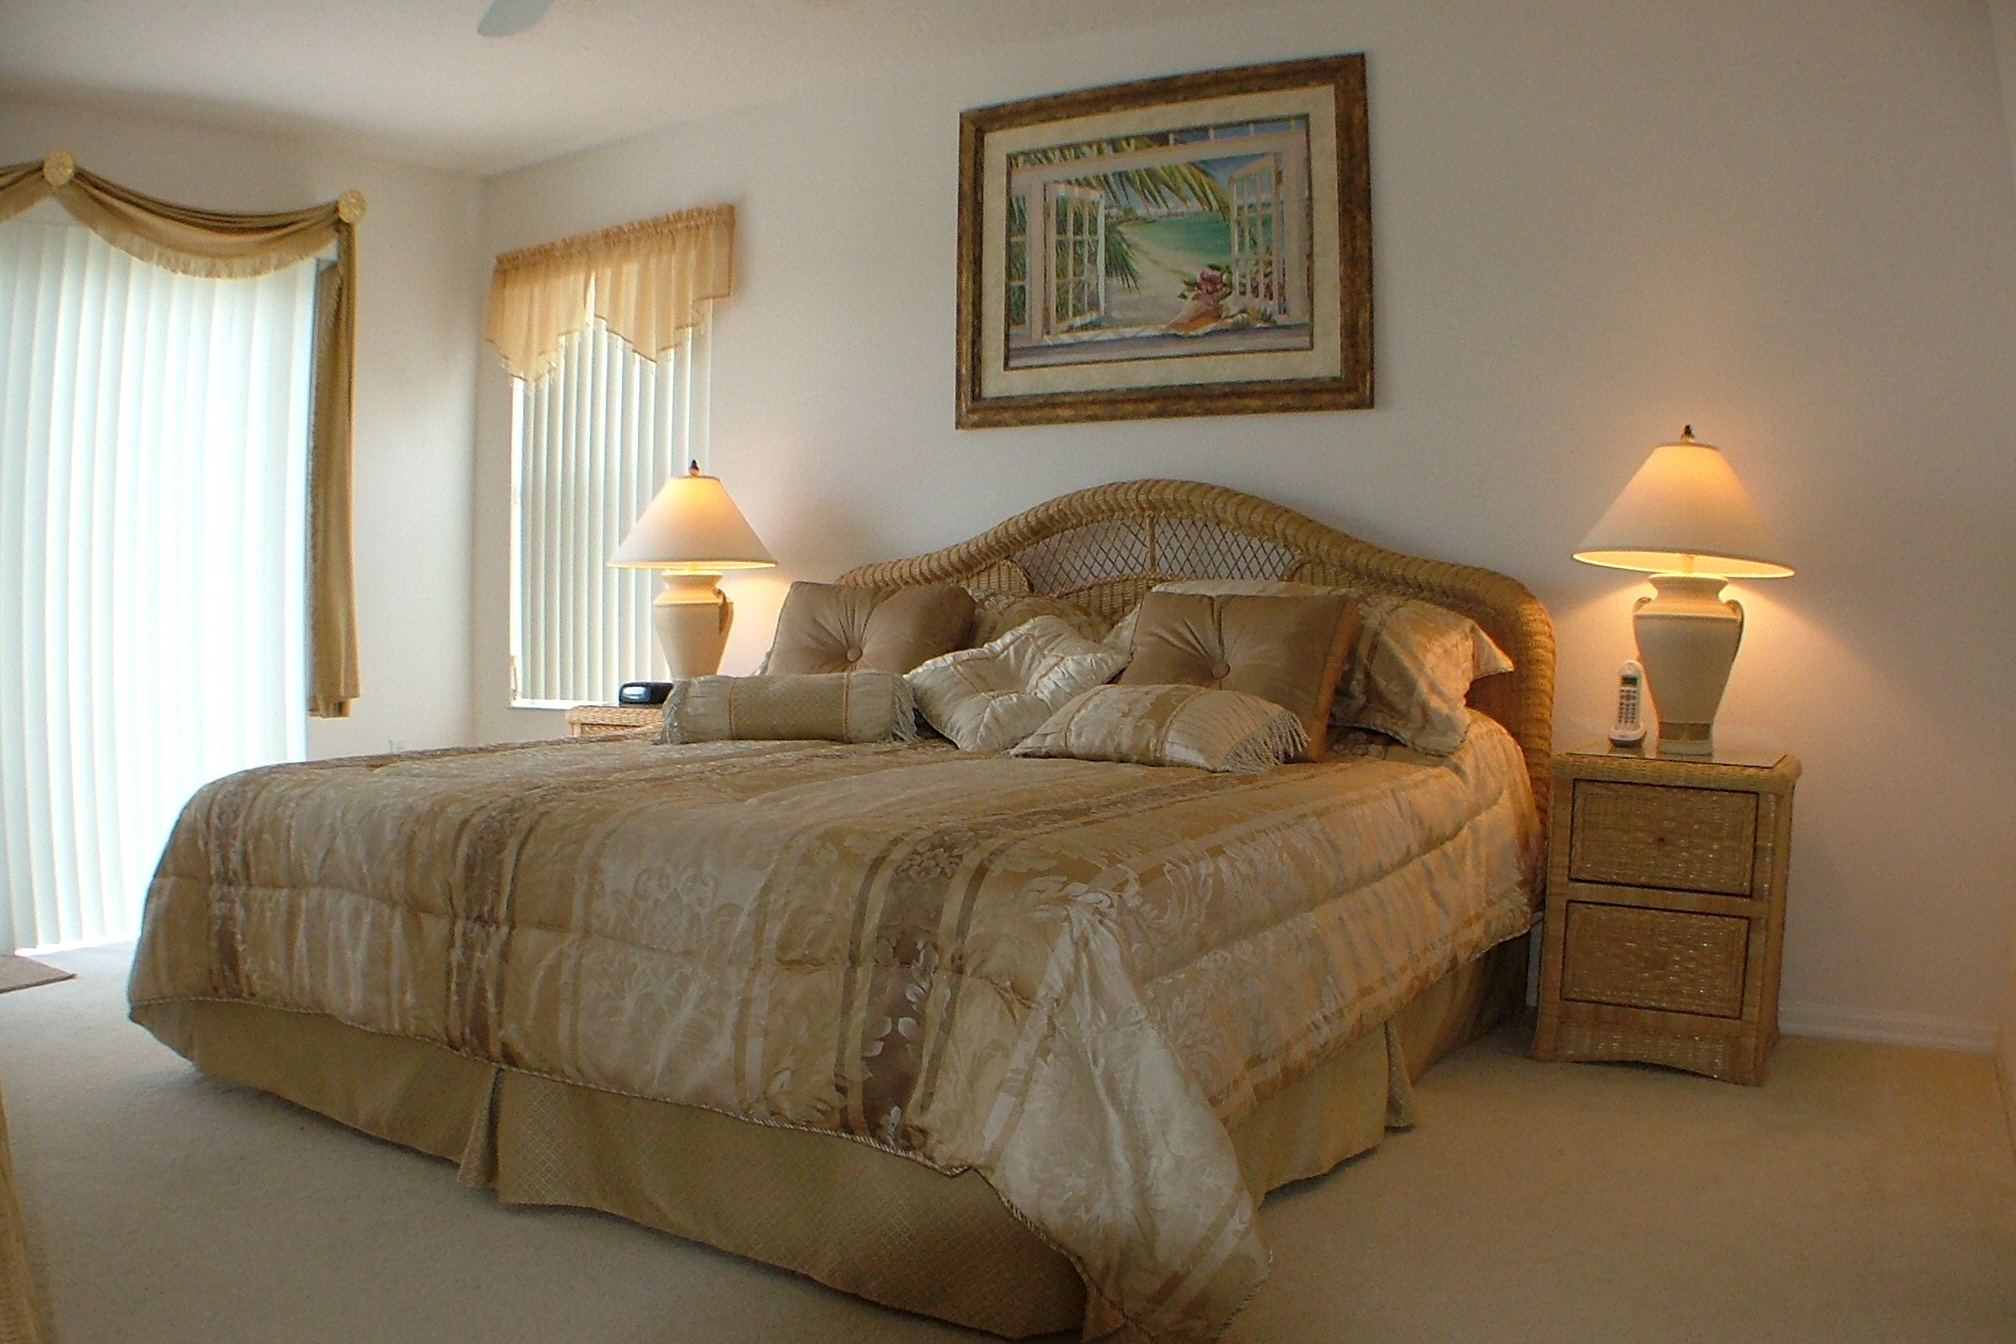 30+ Amazing Traditional Ideas To Style Your Bedroom on Bedroom Decoration Ideas  id=90282